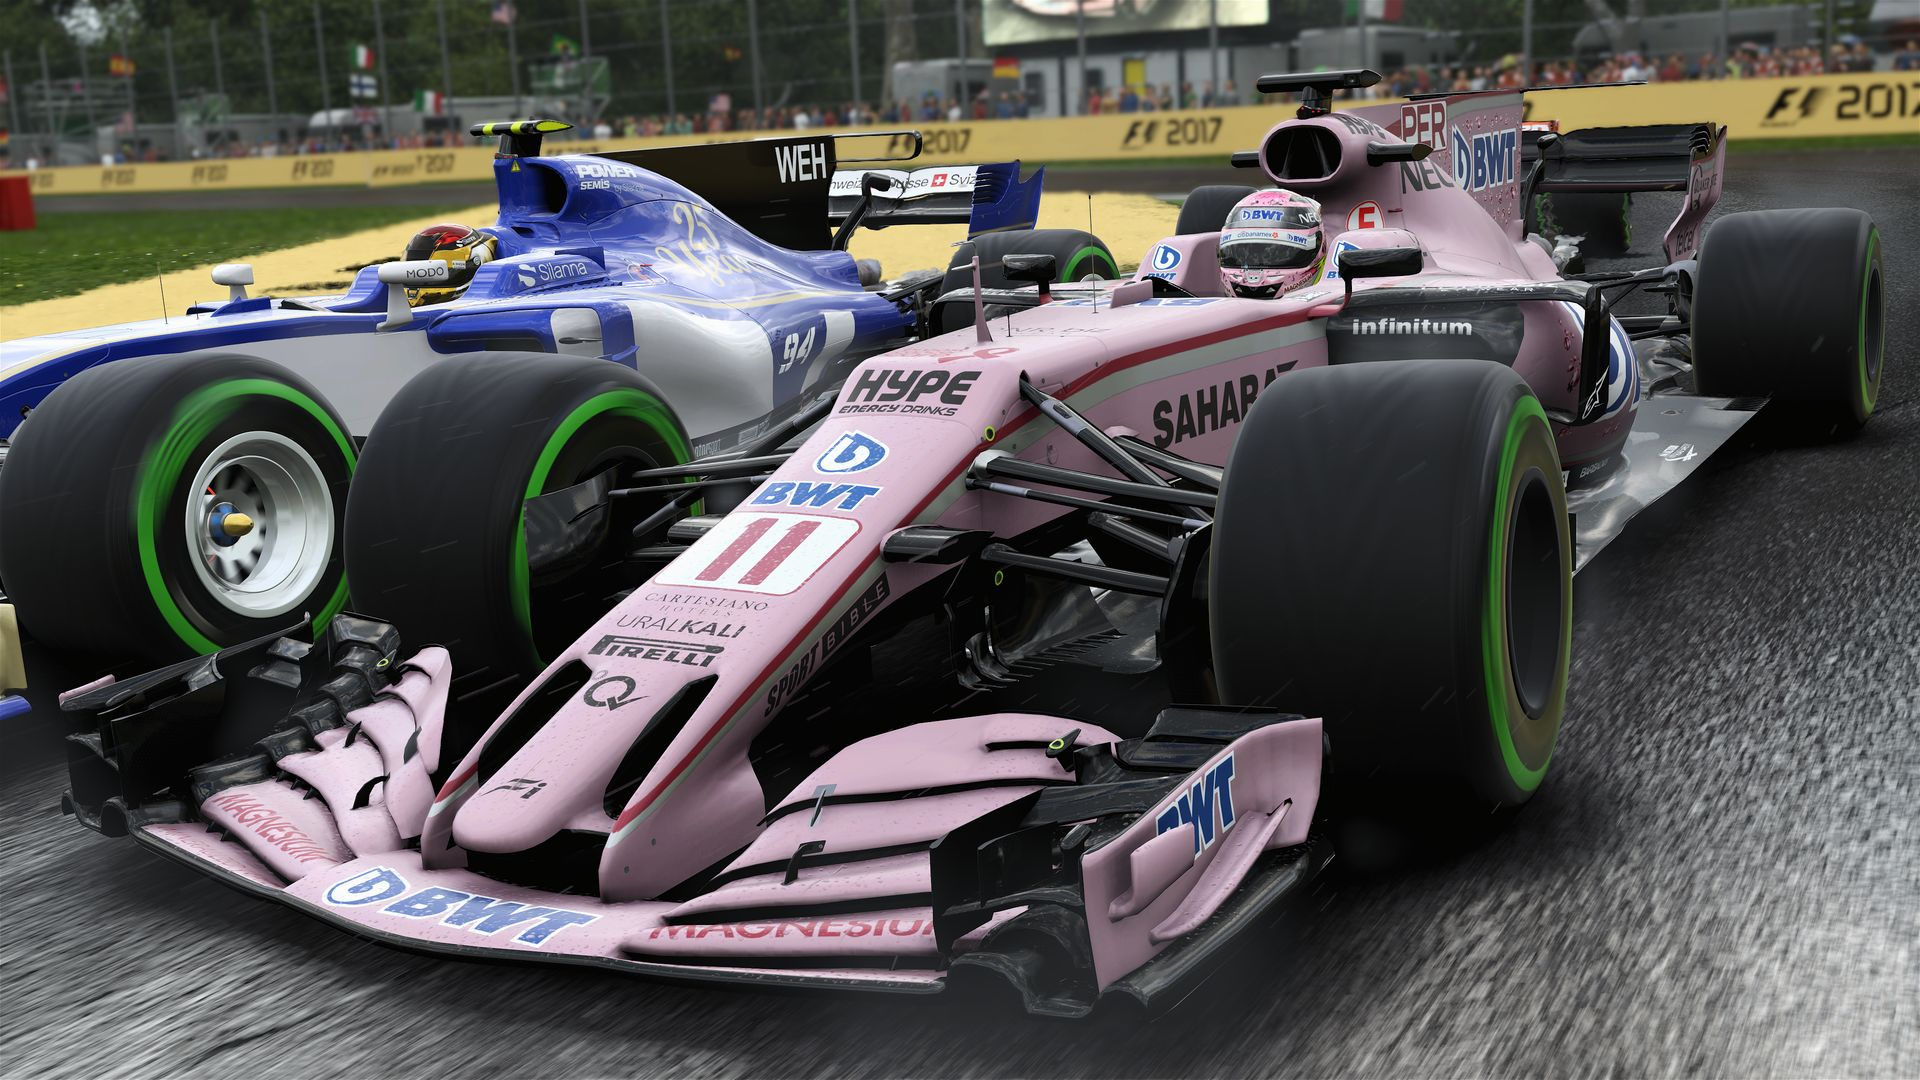 Find the best laptop for F1 2017